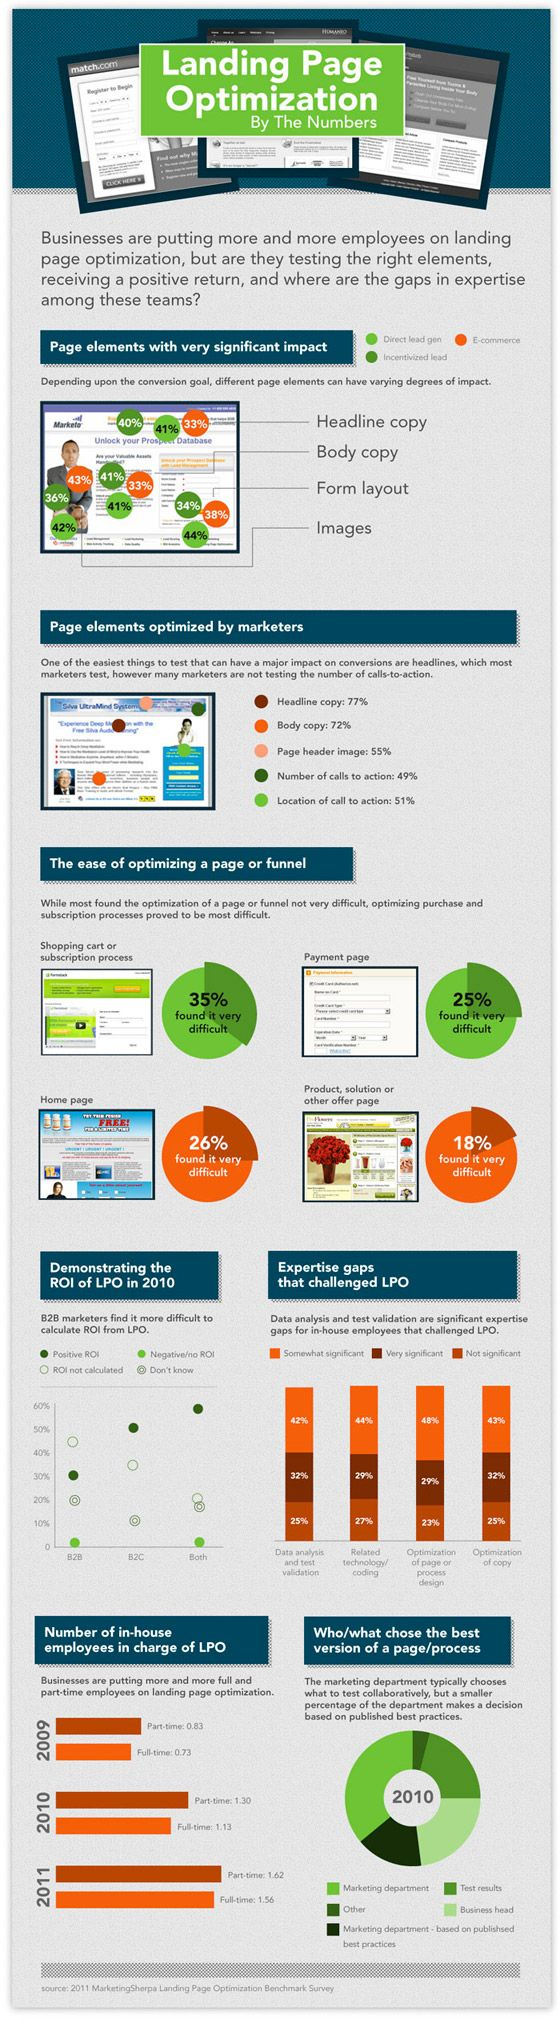 Landing Page Optimization by the Numbers [Infographic]